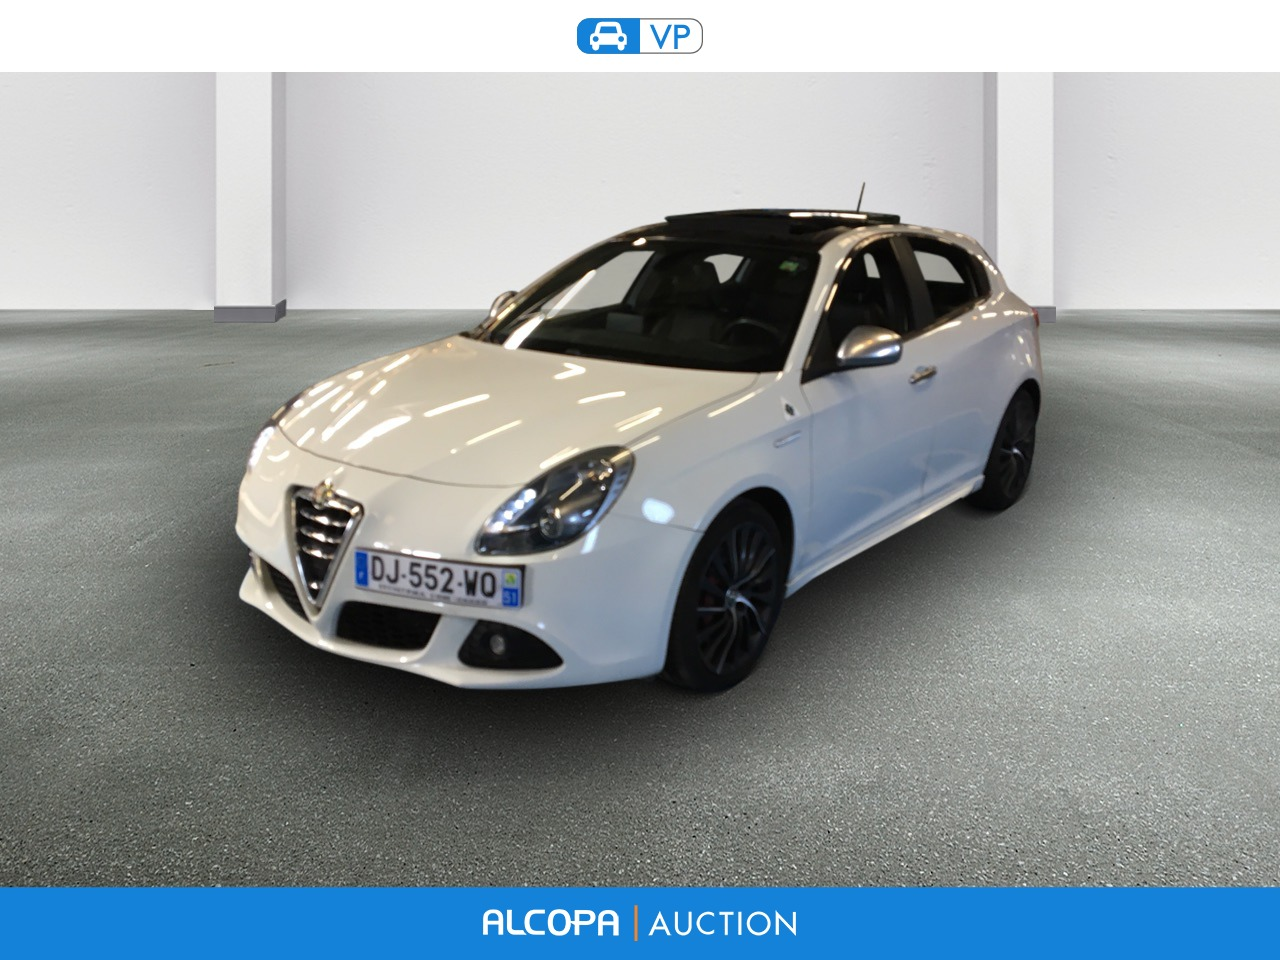 alfa romeo giulietta giulietta 1750 tbi 235 ch quadrifoglio verde alcopa auction. Black Bedroom Furniture Sets. Home Design Ideas